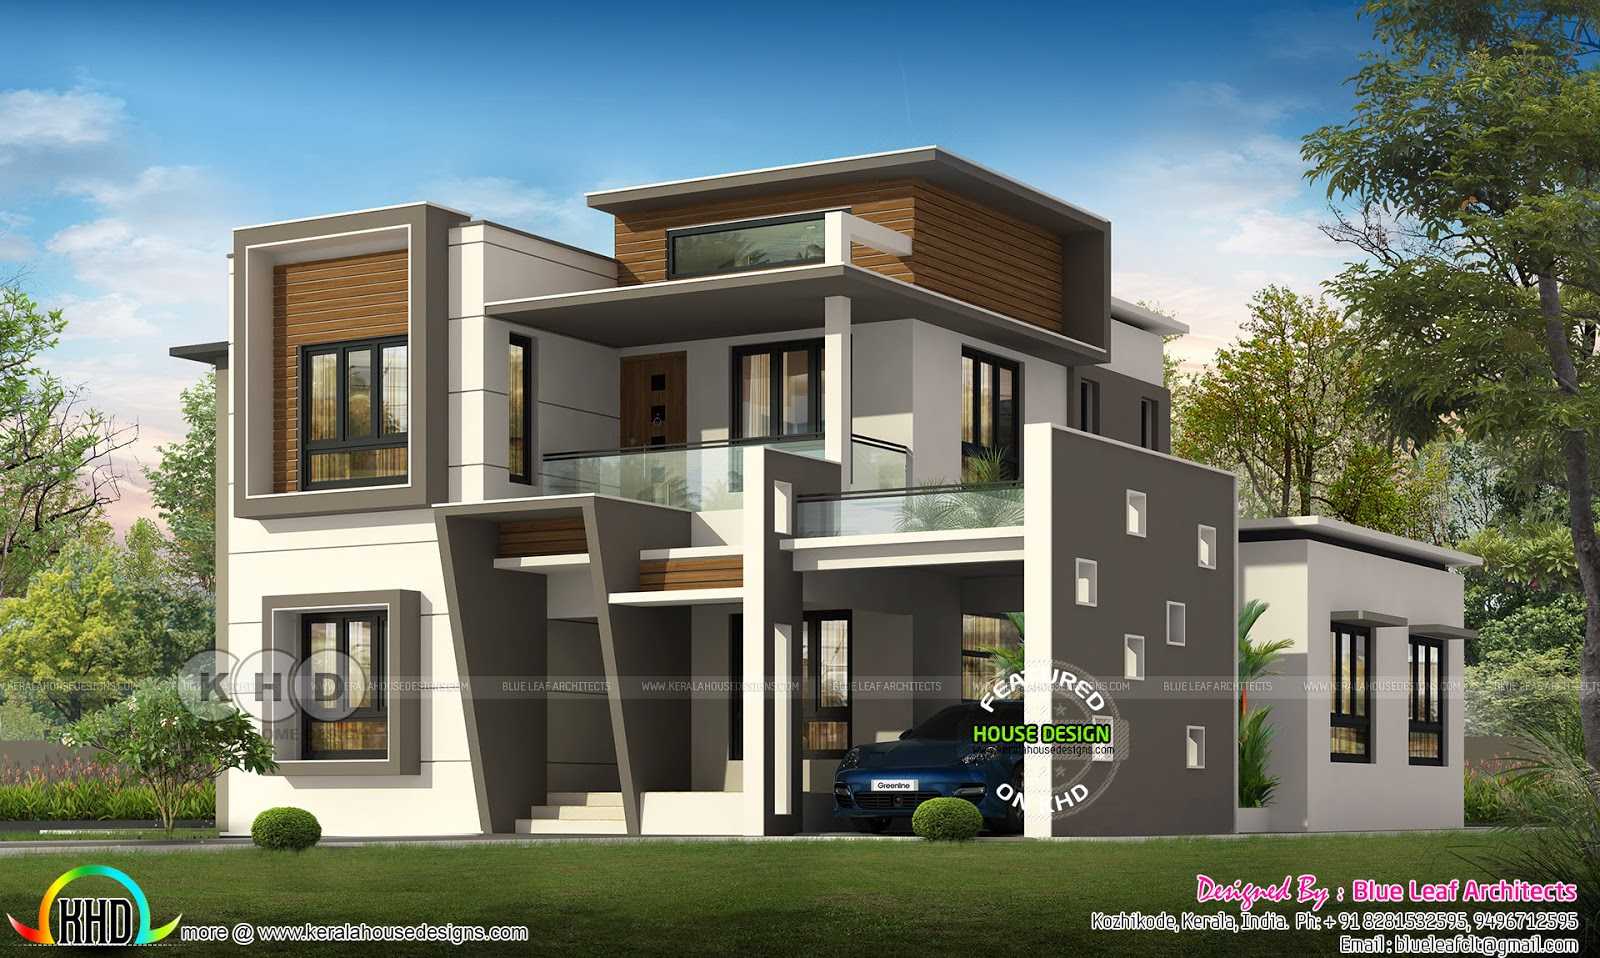 Modern Flat Roof Contemporary House 2400 Sq Ft Kerala Home Design And Floor Plans 8000 Houses